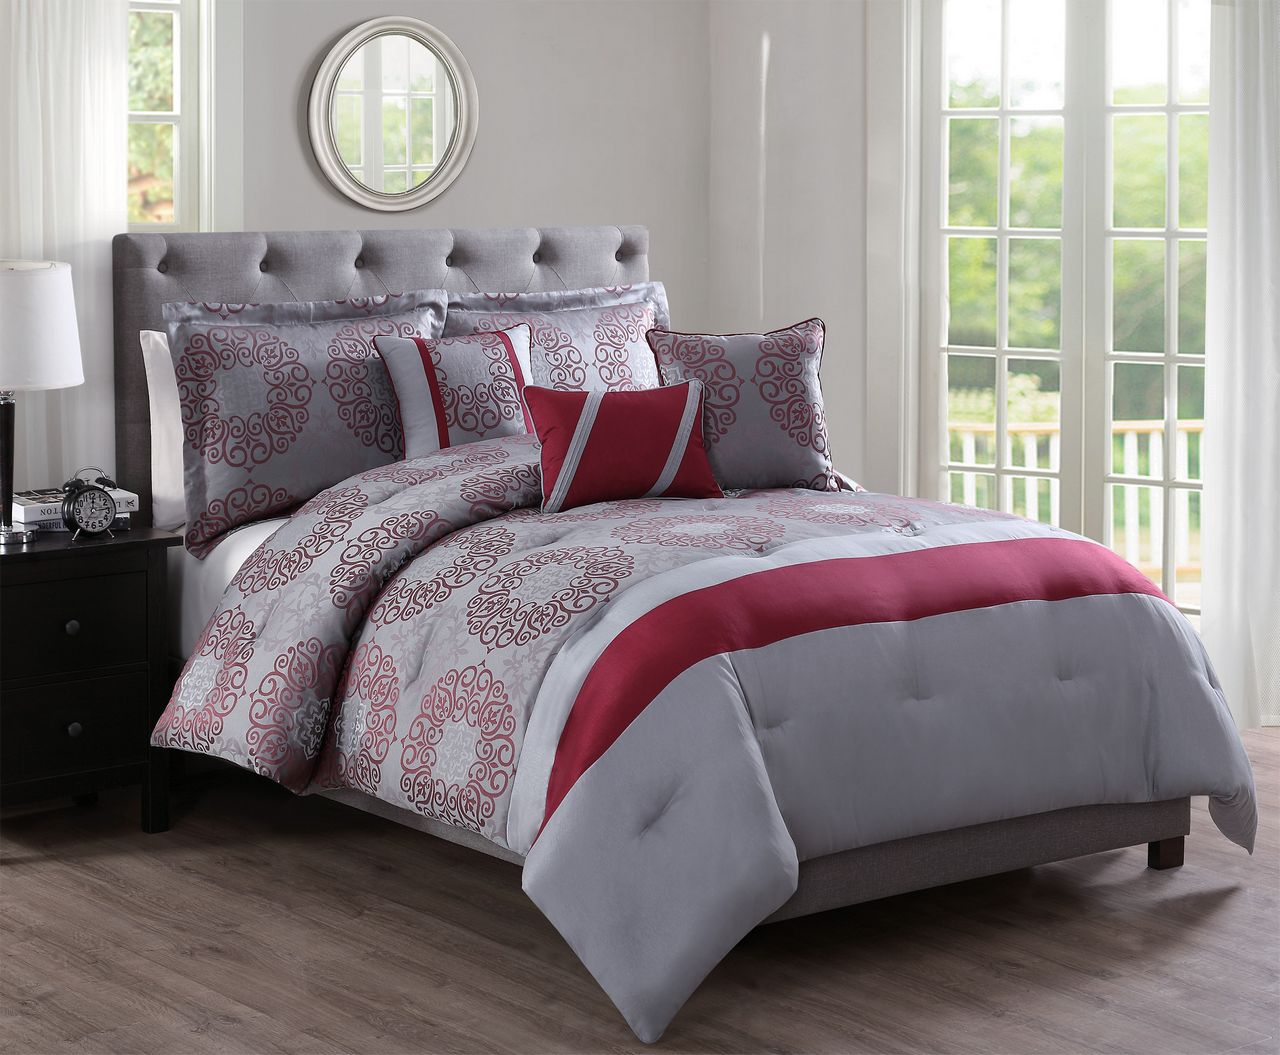 Grey And Red Bedding Sets Home Ideas